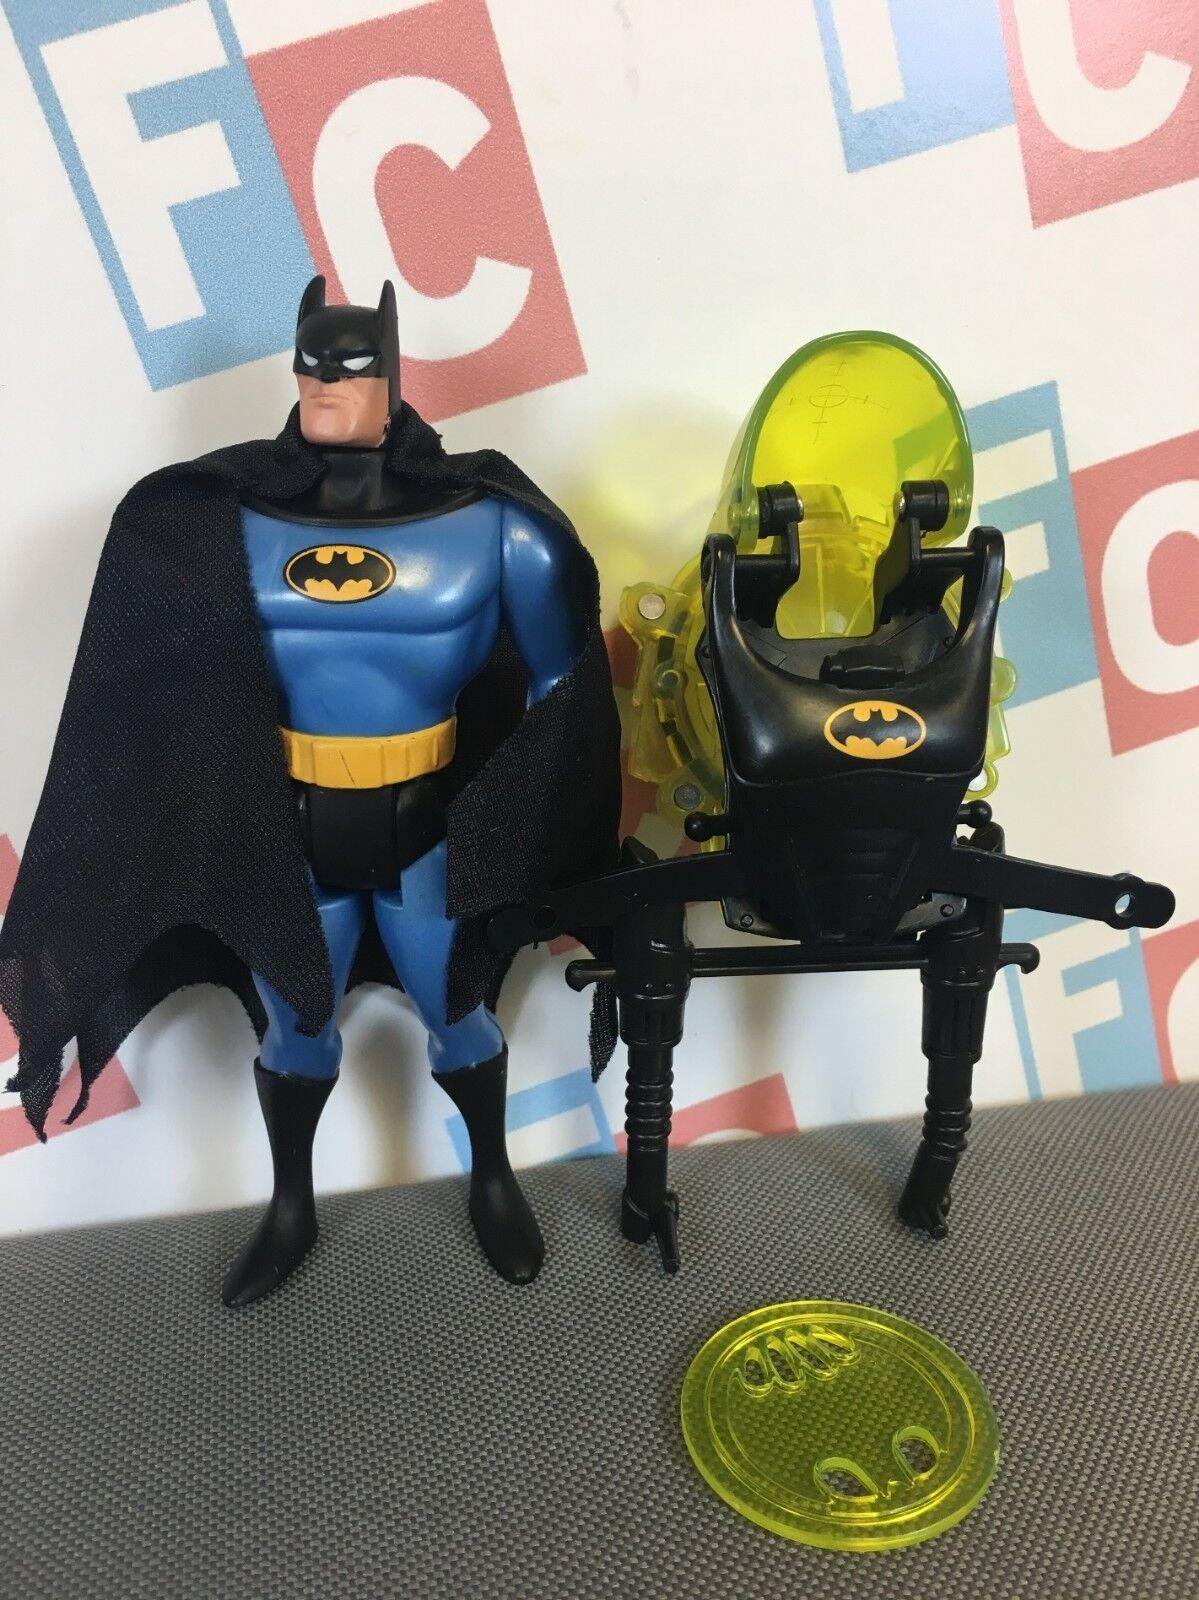 Kenner 1996 DC Animated Adventures of Batuomo e Robin Batuomo Mailaway cifra